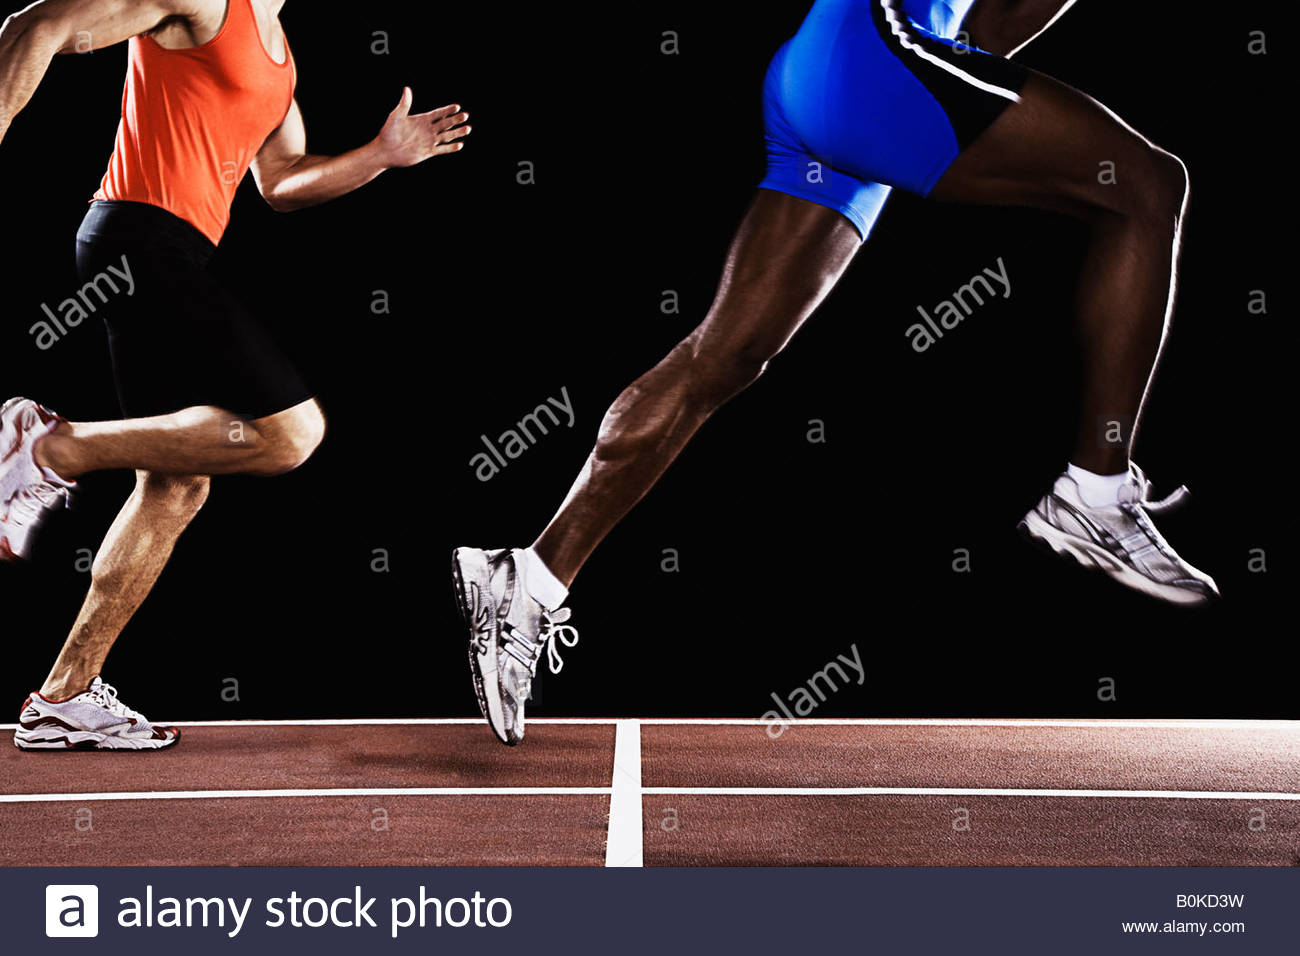 Two runners on race track with one jumping up in air - Stock Image